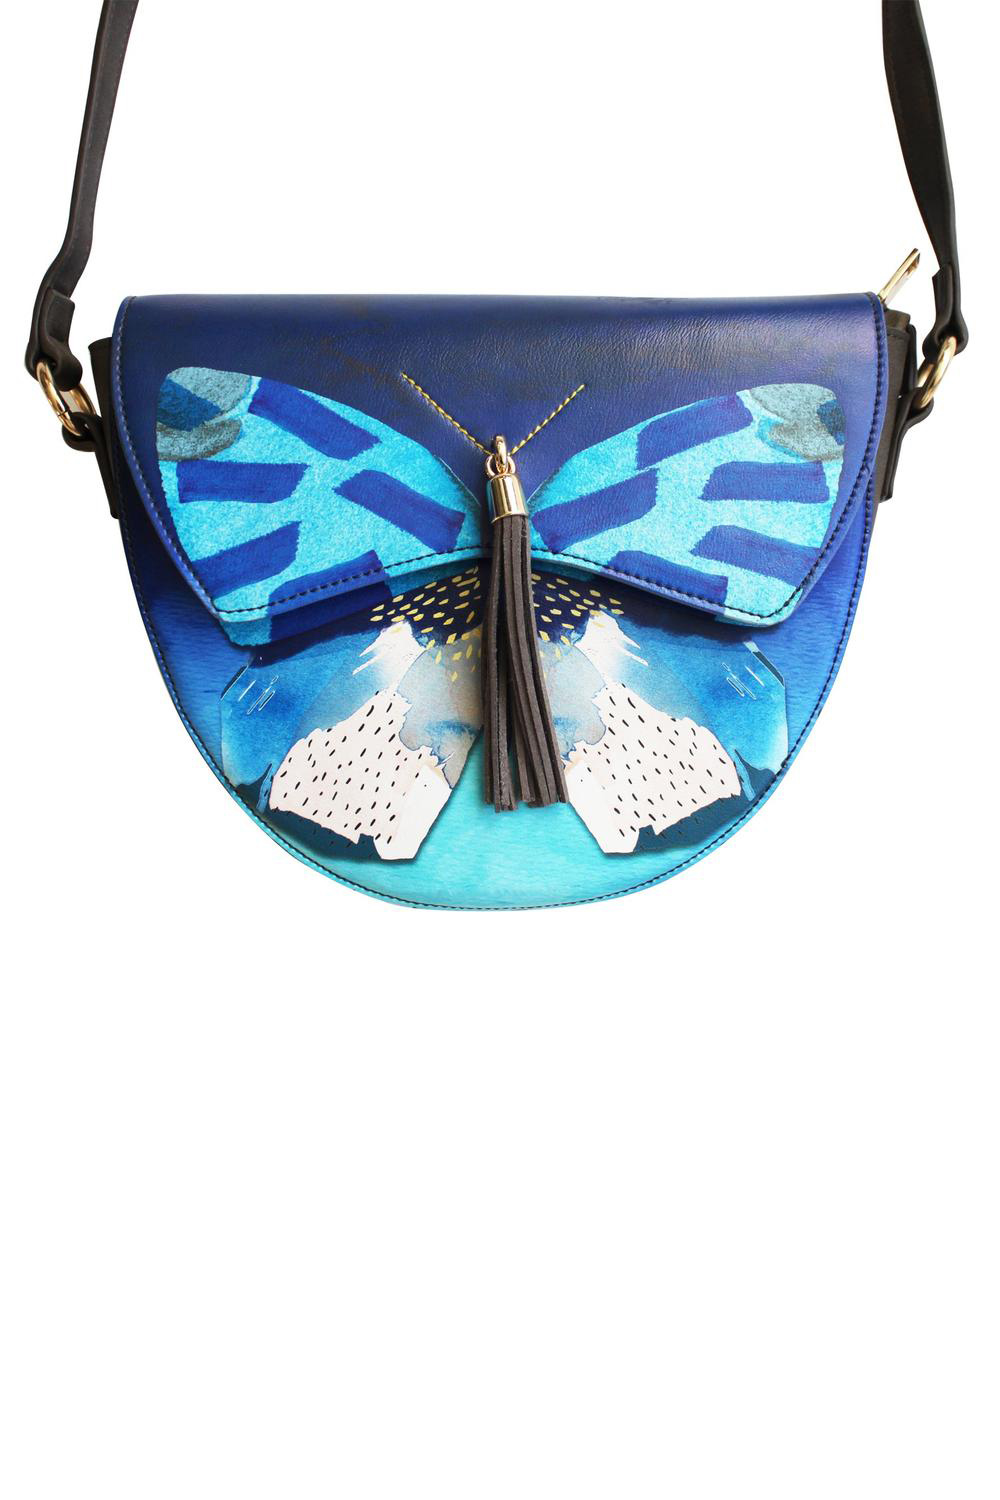 Disaster kék crossbody kézitáska Papillon Saddle Bag